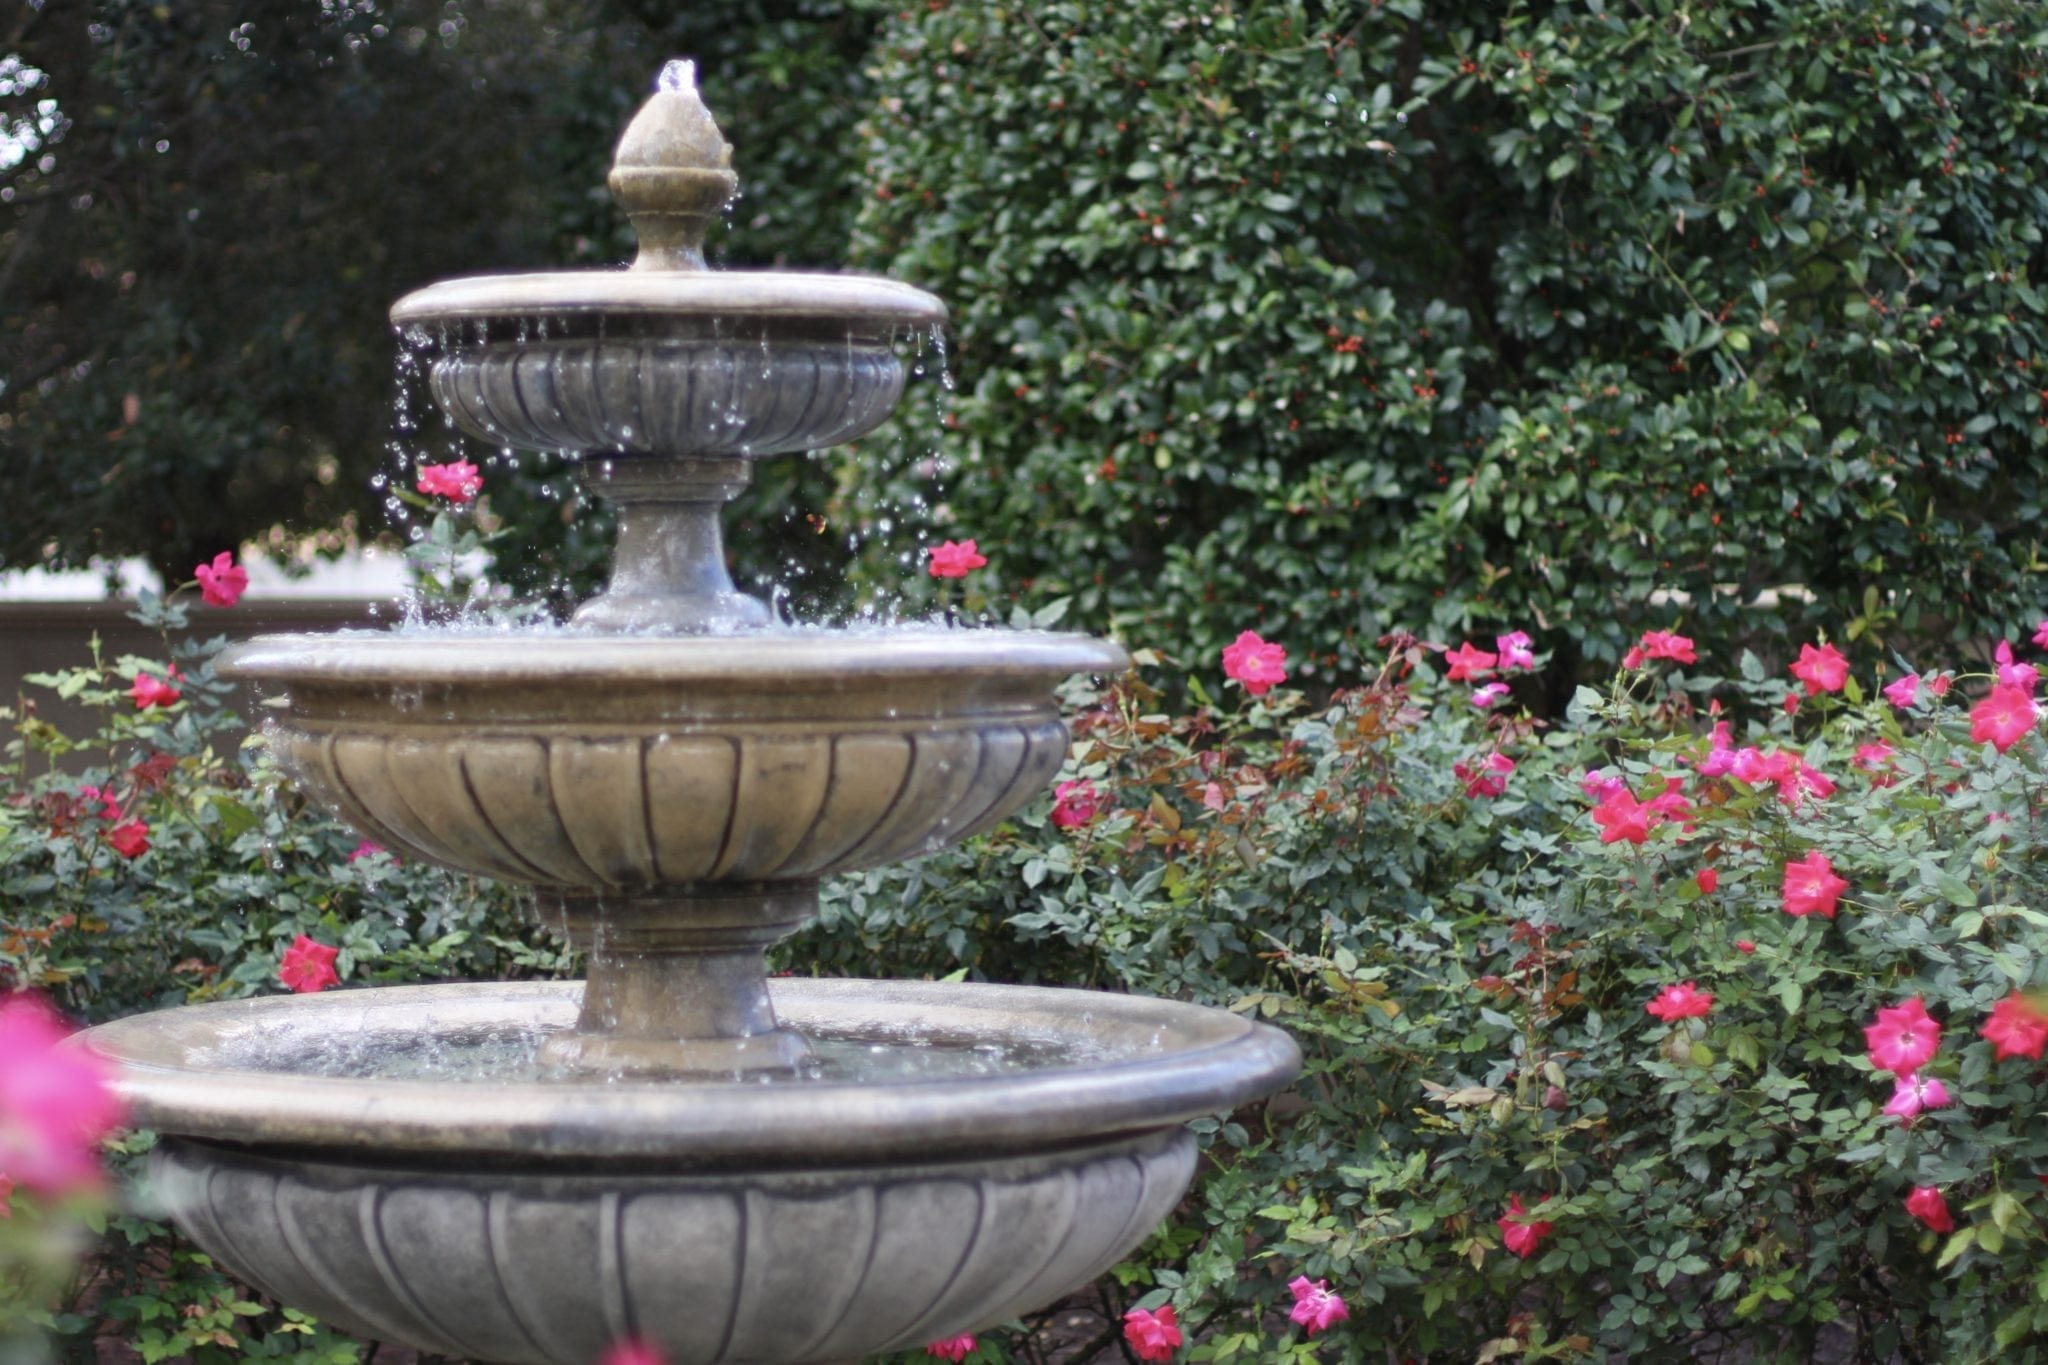 Backyard Water Features with red roses.